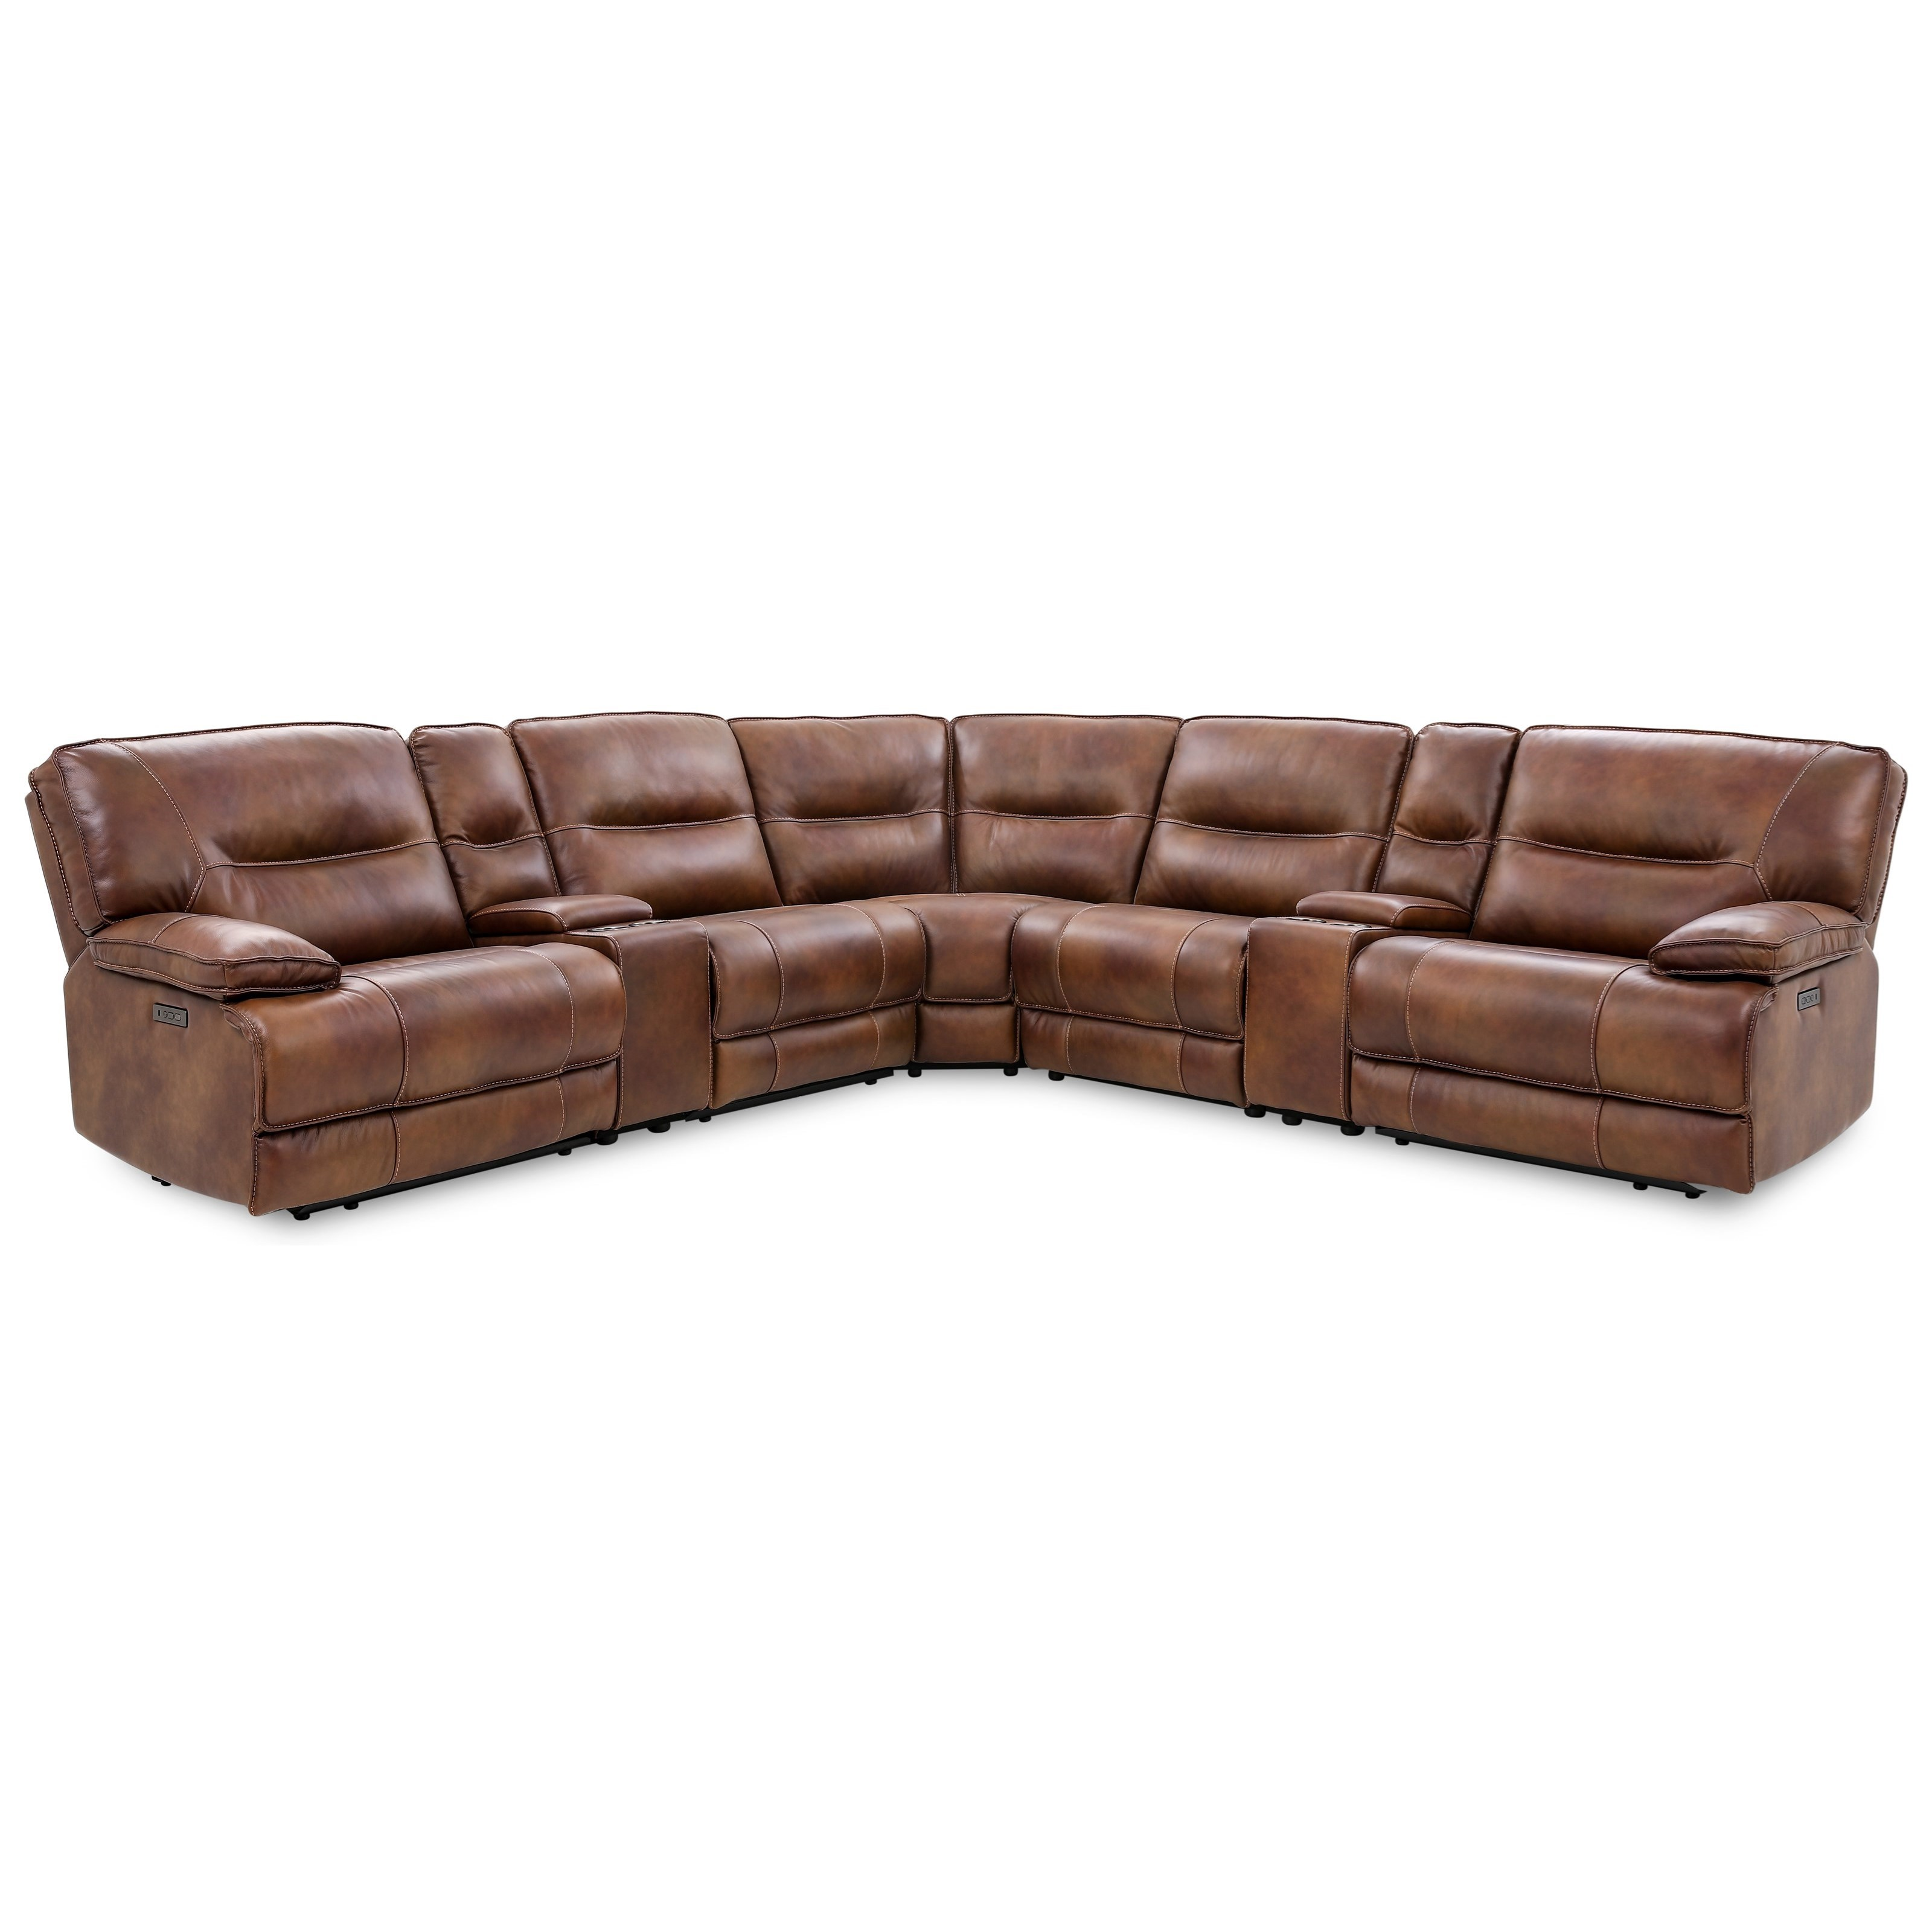 70048 6-Piece Power Reclining Sectional by Cheers at Furniture Fair - North Carolina